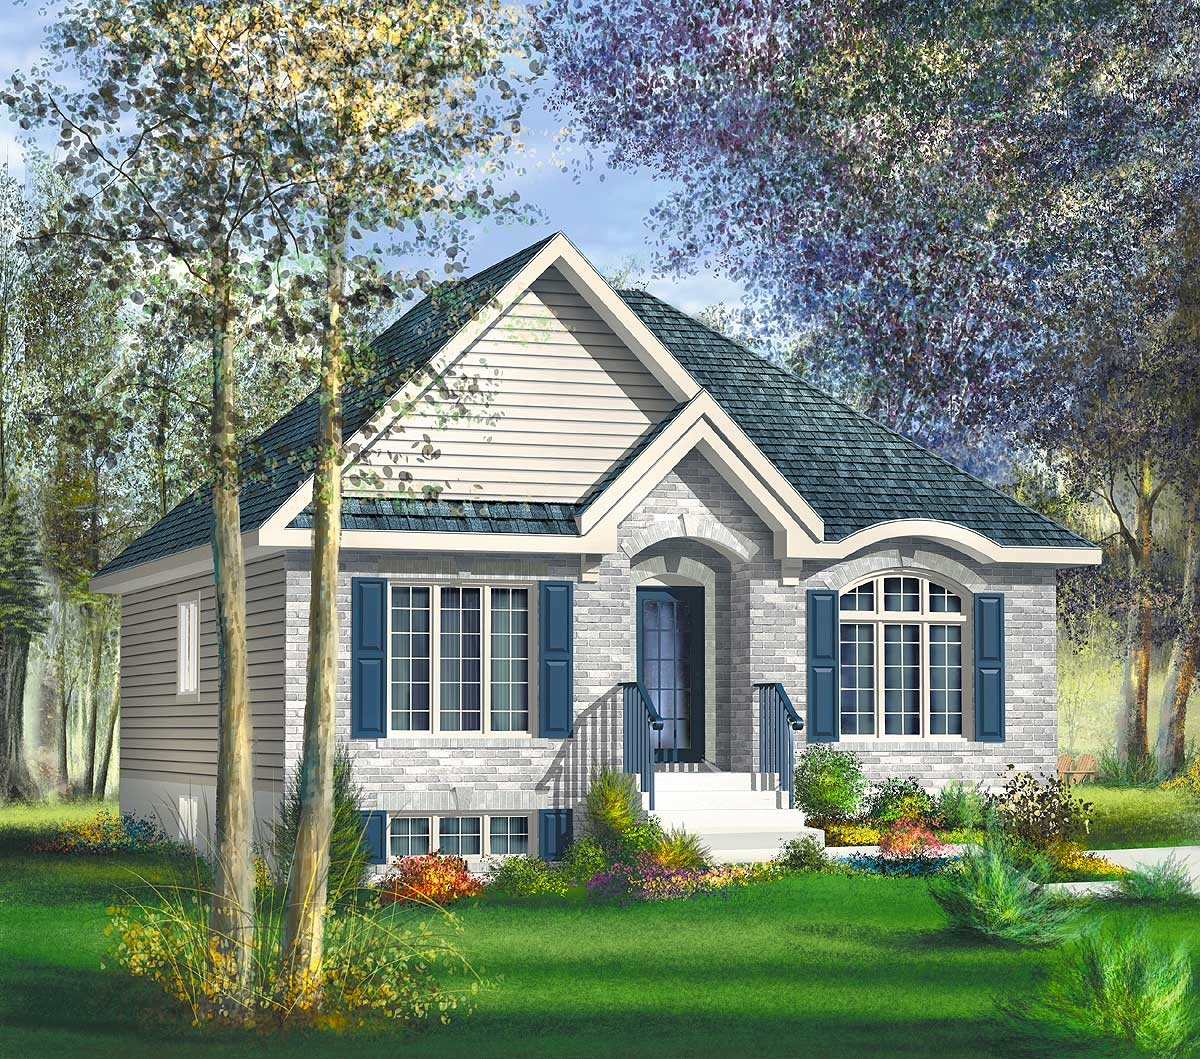 Cozy bungalow cottage 80401pm architectural designs for Cozy cottage home designs